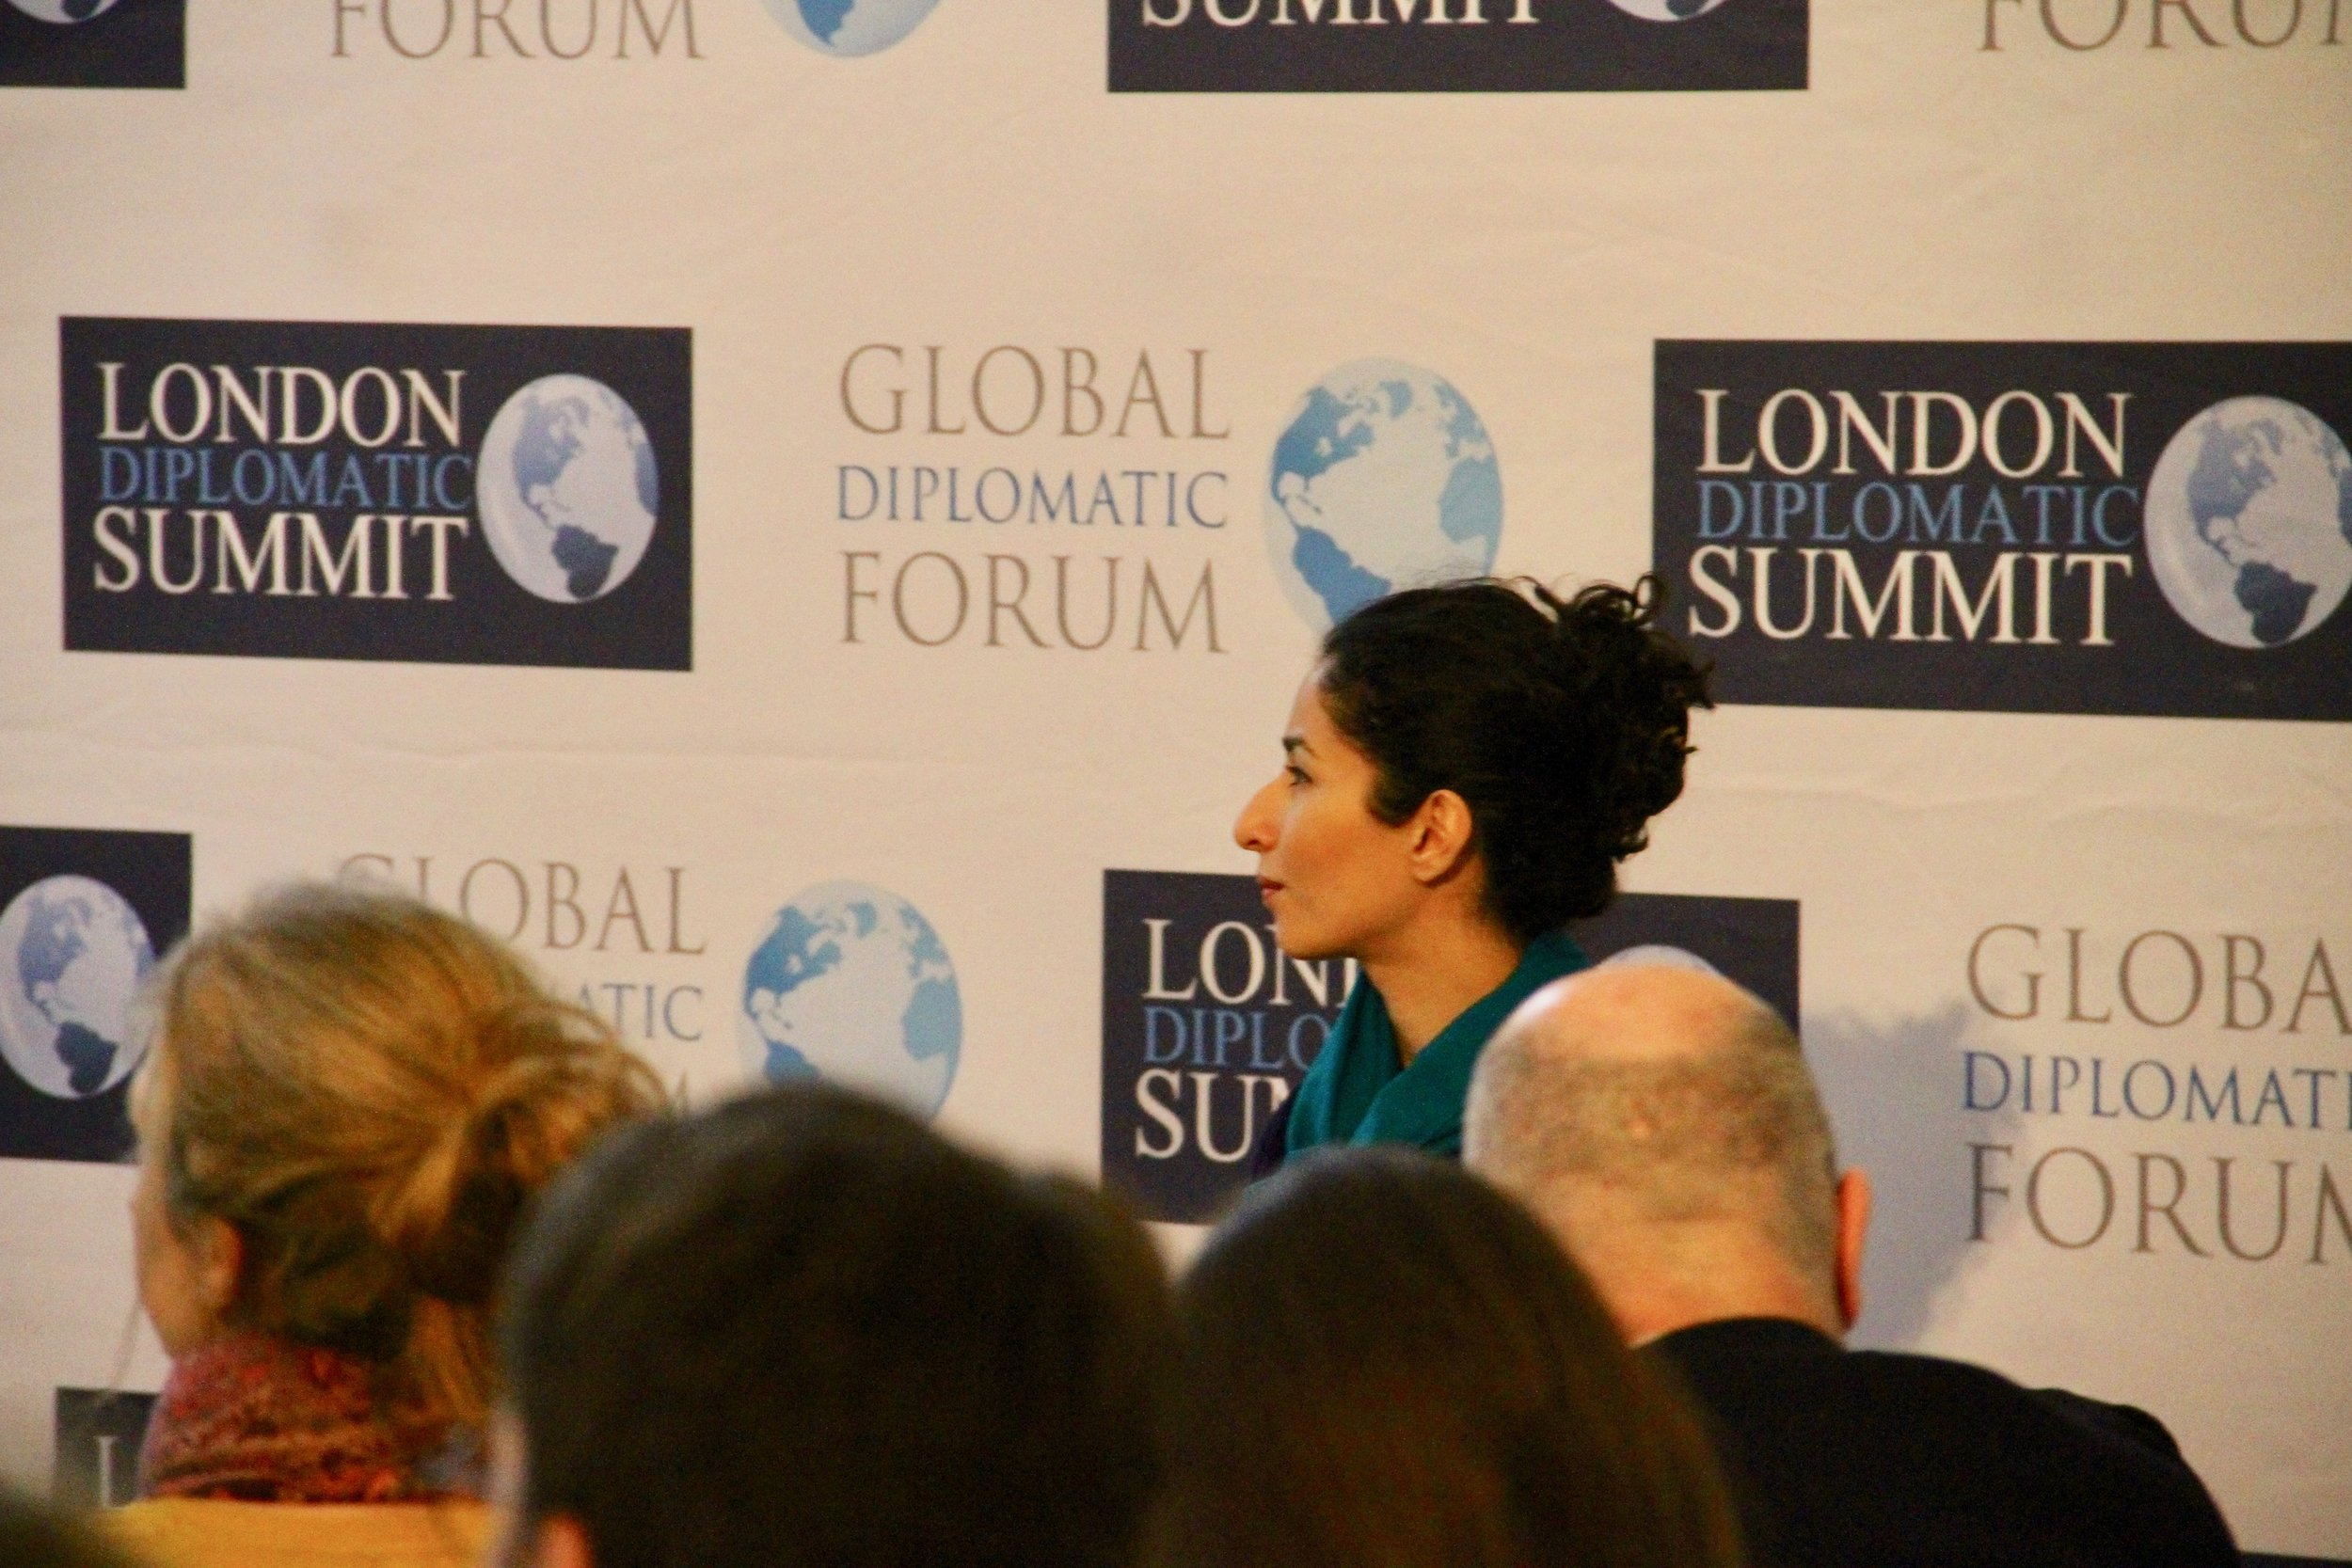 London Diplomatic Summit 2018 — Global Diplomatic Forum